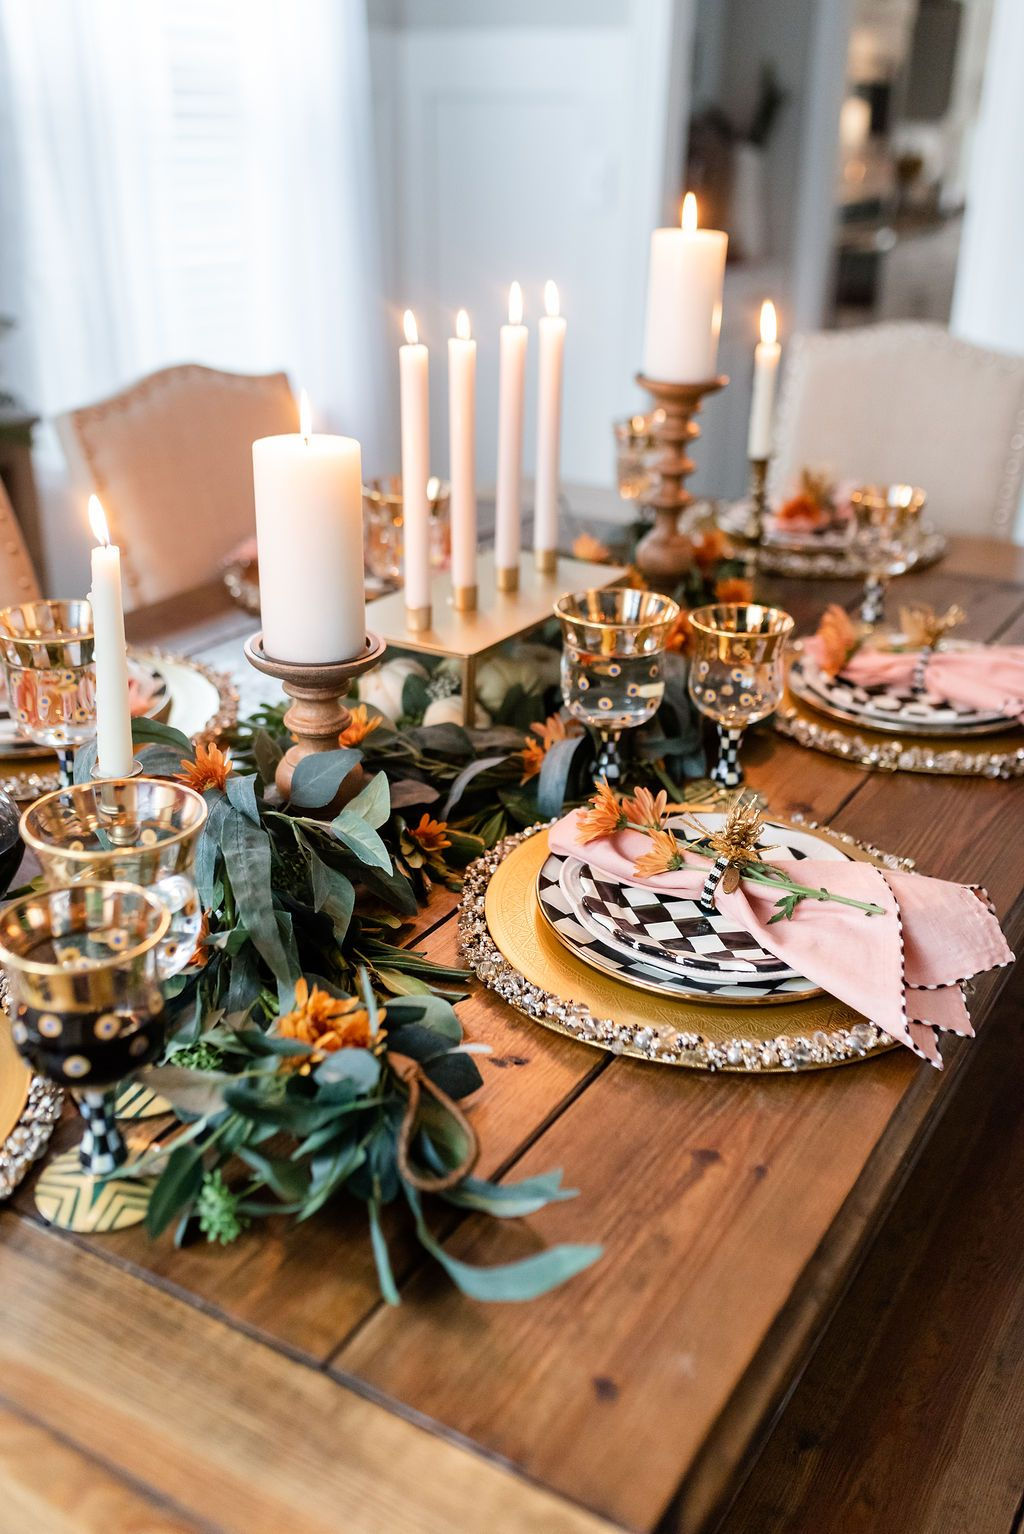 Thanksgiving 2018 With Mackenzie Childs Mackenzie Childs M Thanksgiving Dinner Table Setting Thanksgiving Dinner Table Decorations Thanksgiving Dinner Table